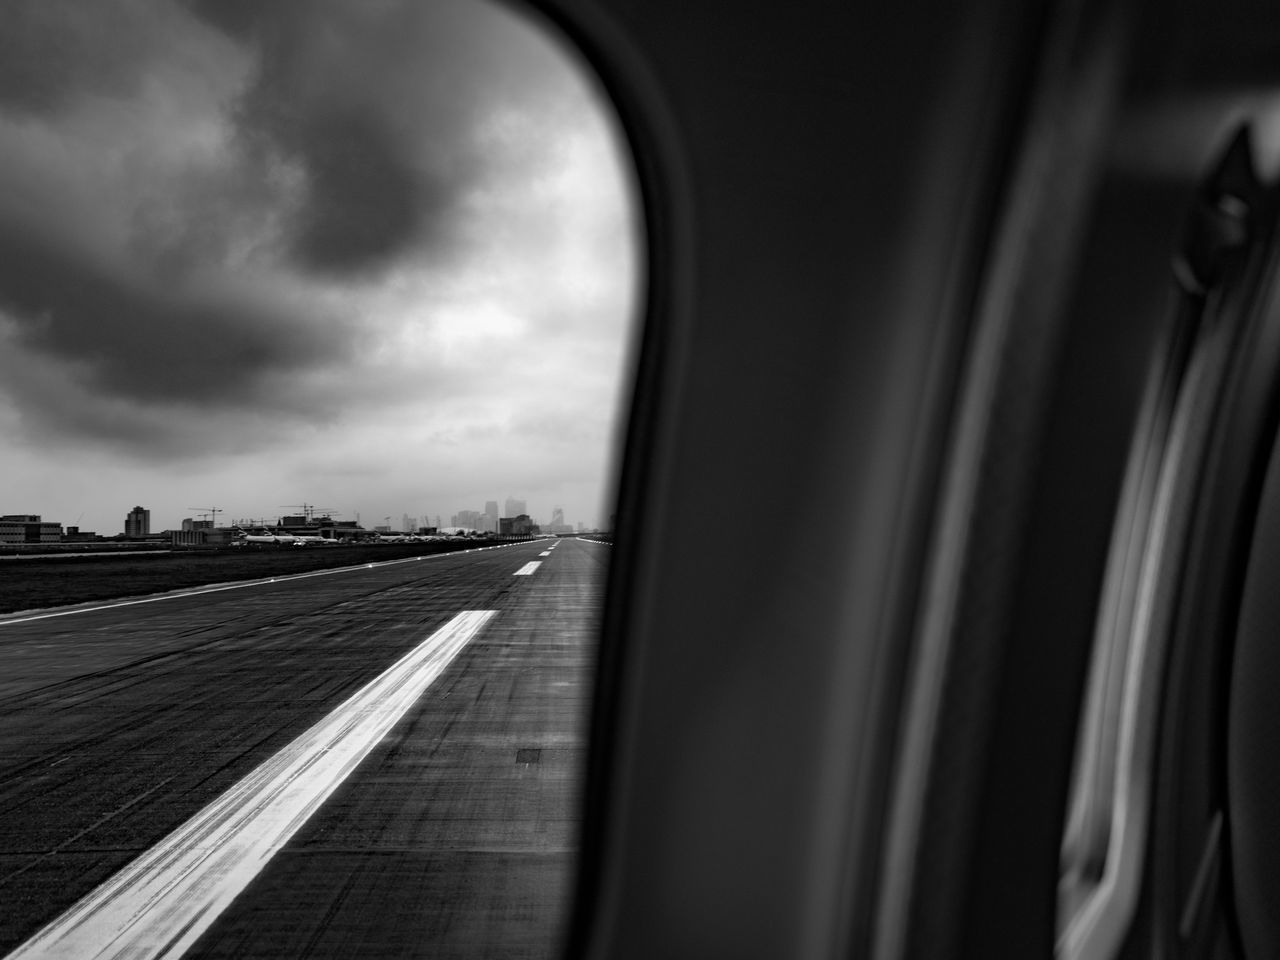 London City Airport Airplane Airport Black And White Clouds Day Indoors  Landscape Nature No People Road Runway Sky Transportation Weather Let's Go. Together.